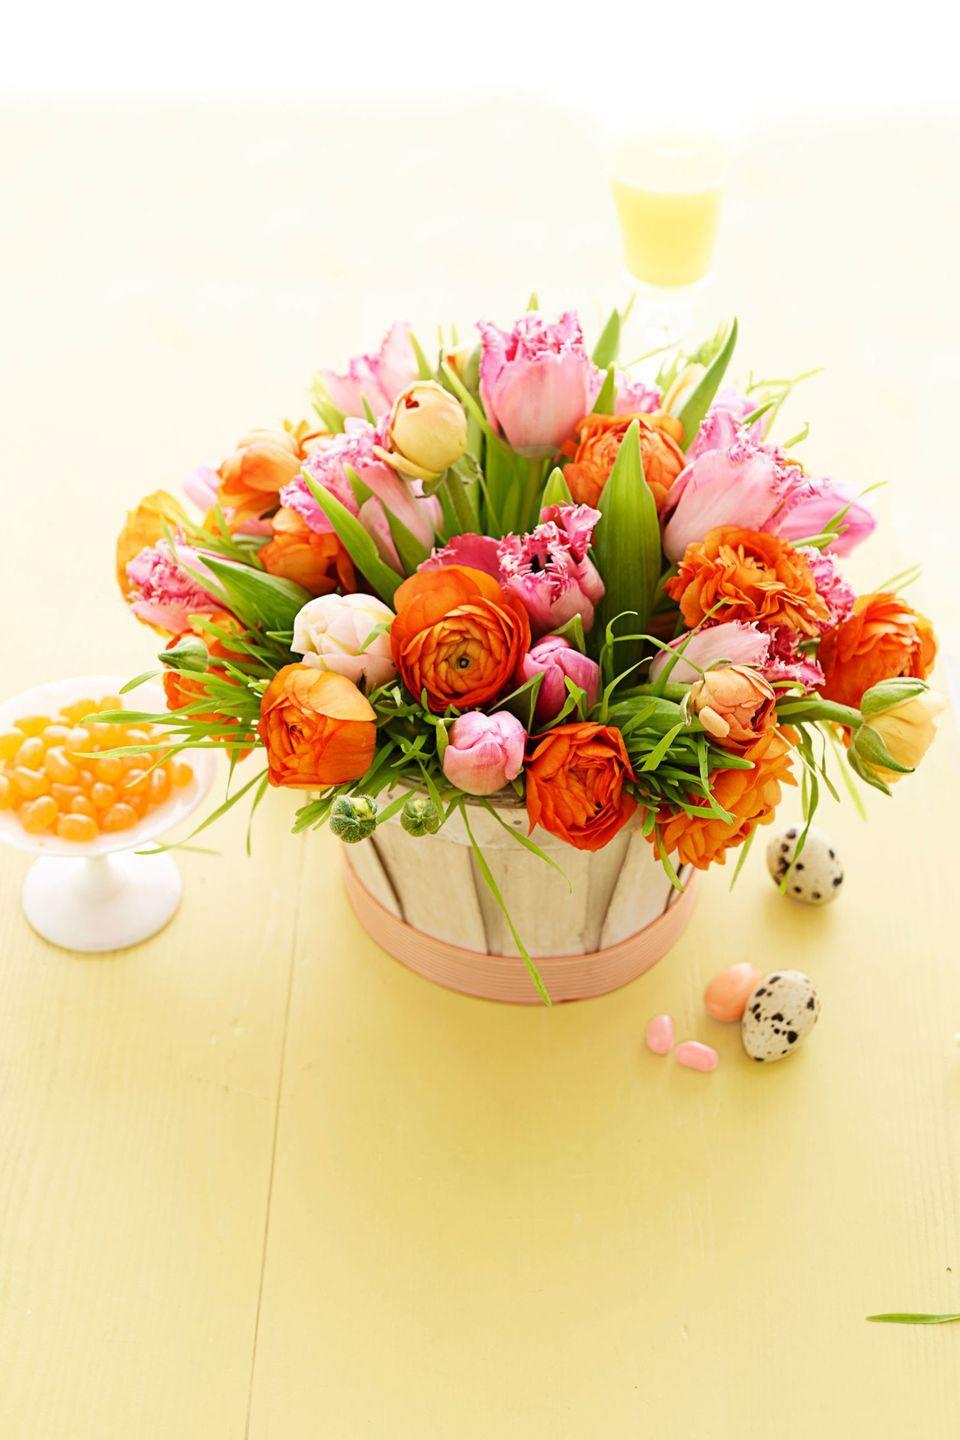 """<p>Opt for a whitewashed peck basket if you want your colorful flowers to pop and steal all the attention on your table. </p><p><em><a href=""""http://www.goodhousekeeping.com/holidays/easter-ideas/g1906/easter-flowers/?slide=12"""" rel=""""nofollow noopener"""" target=""""_blank"""" data-ylk=""""slk:See more at Good Housekeeping »"""" class=""""link rapid-noclick-resp"""">See more at Good Housekeeping »</a></em></p><p><strong><em> Midoshark Rattan Vase, $36</em></strong> <a class=""""link rapid-noclick-resp"""" href=""""https://www.amazon.com/Midoshark-Hand-Woven-Rattan-Tabletop-Decorative/dp/B08SKZF9TH/ref=sr_1_16?tag=syn-yahoo-20&ascsubtag=%5Bartid%7C10057.g.19409803%5Bsrc%7Cyahoo-us"""" rel=""""nofollow noopener"""" target=""""_blank"""" data-ylk=""""slk:BUY NOW"""">BUY NOW</a></p>"""